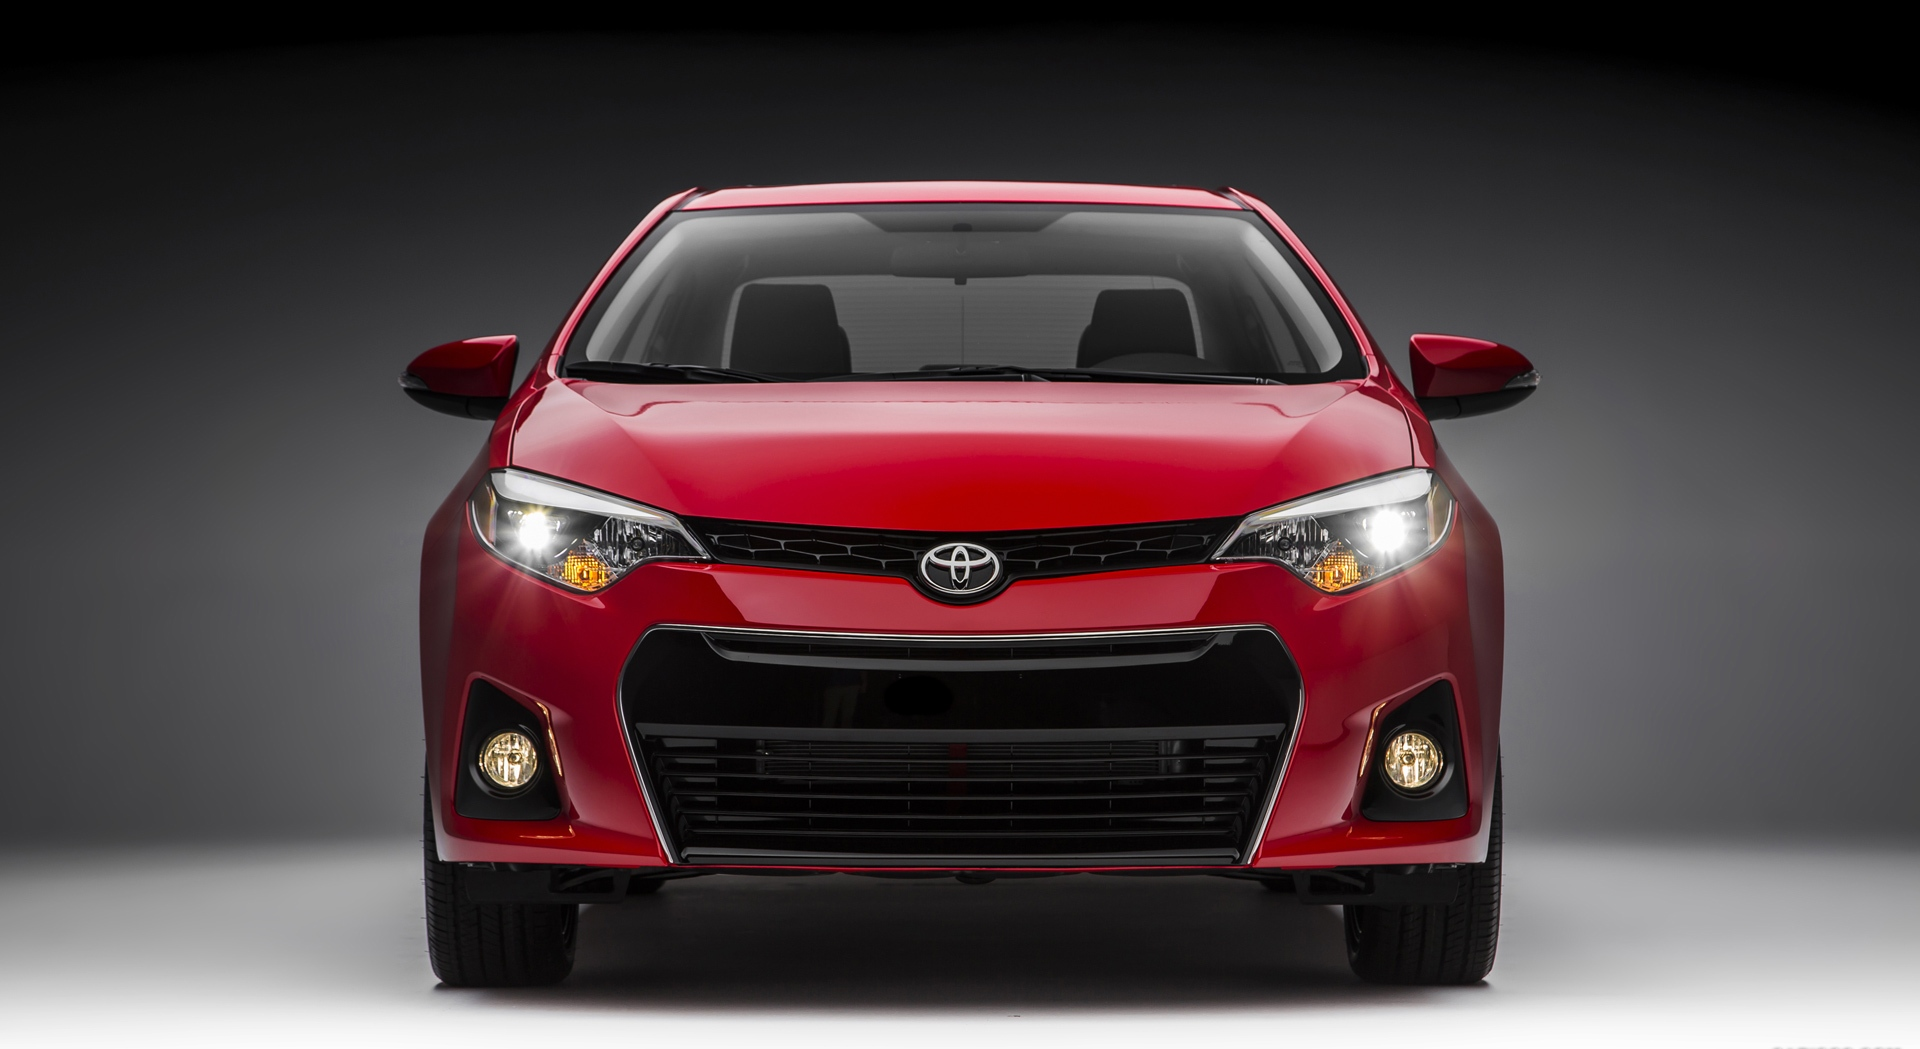 Toyota Cars Wallpapers Free Download Toyota Corolla Red Front Hd Desktop Wallpapers 4k Hd